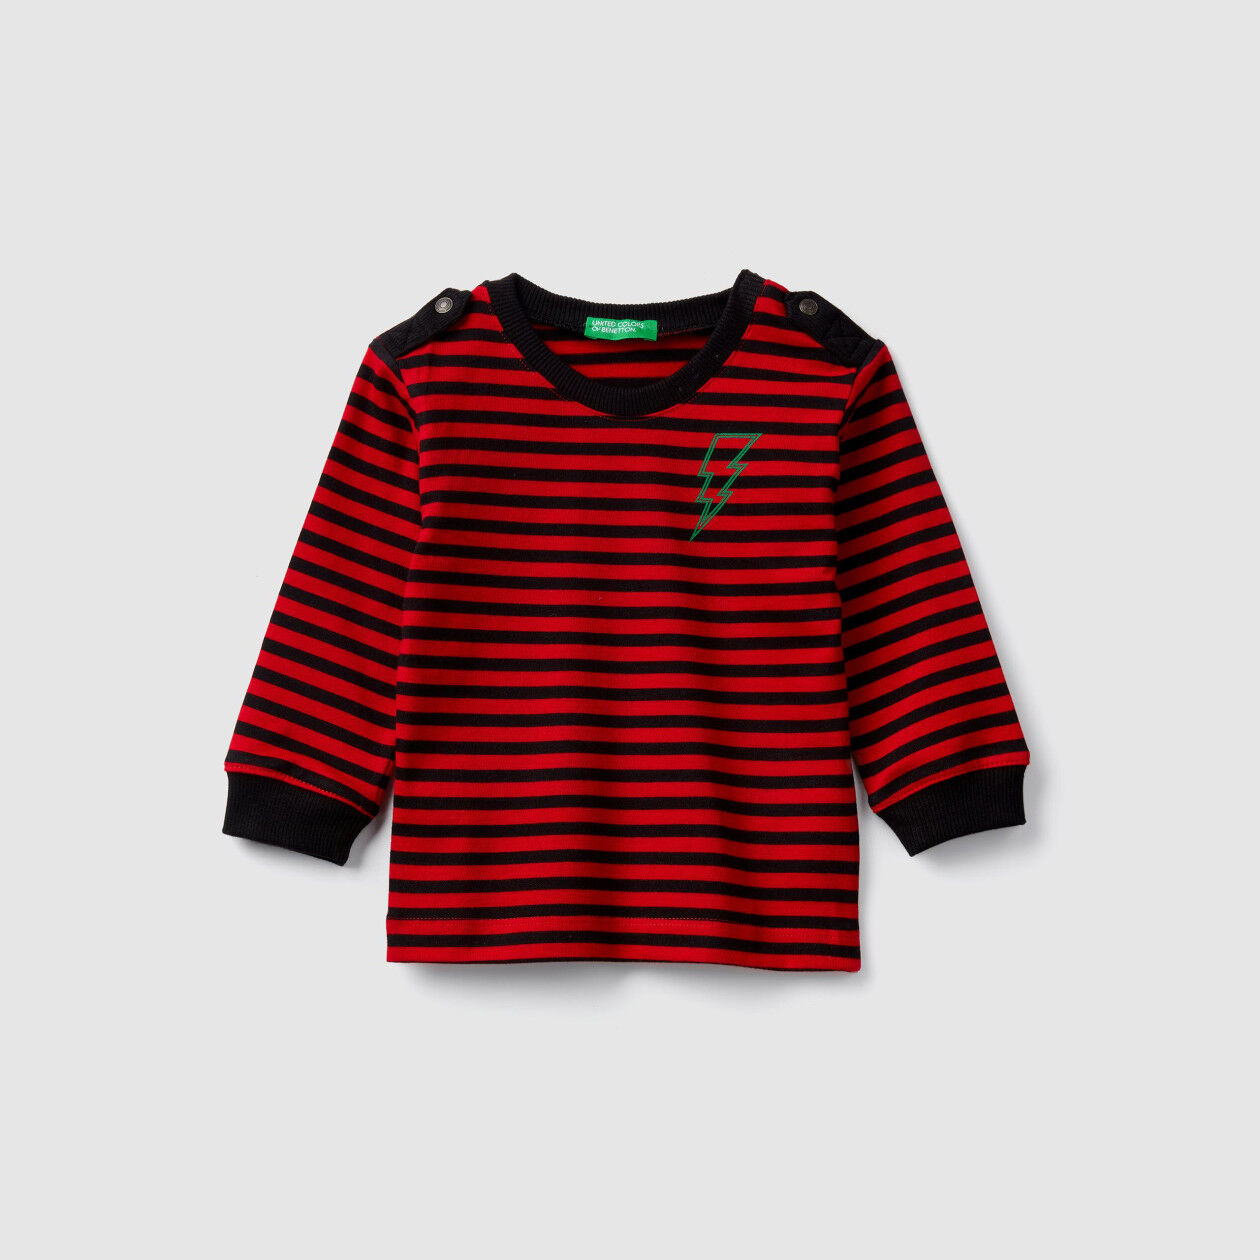 Striped t-shirt with tabs